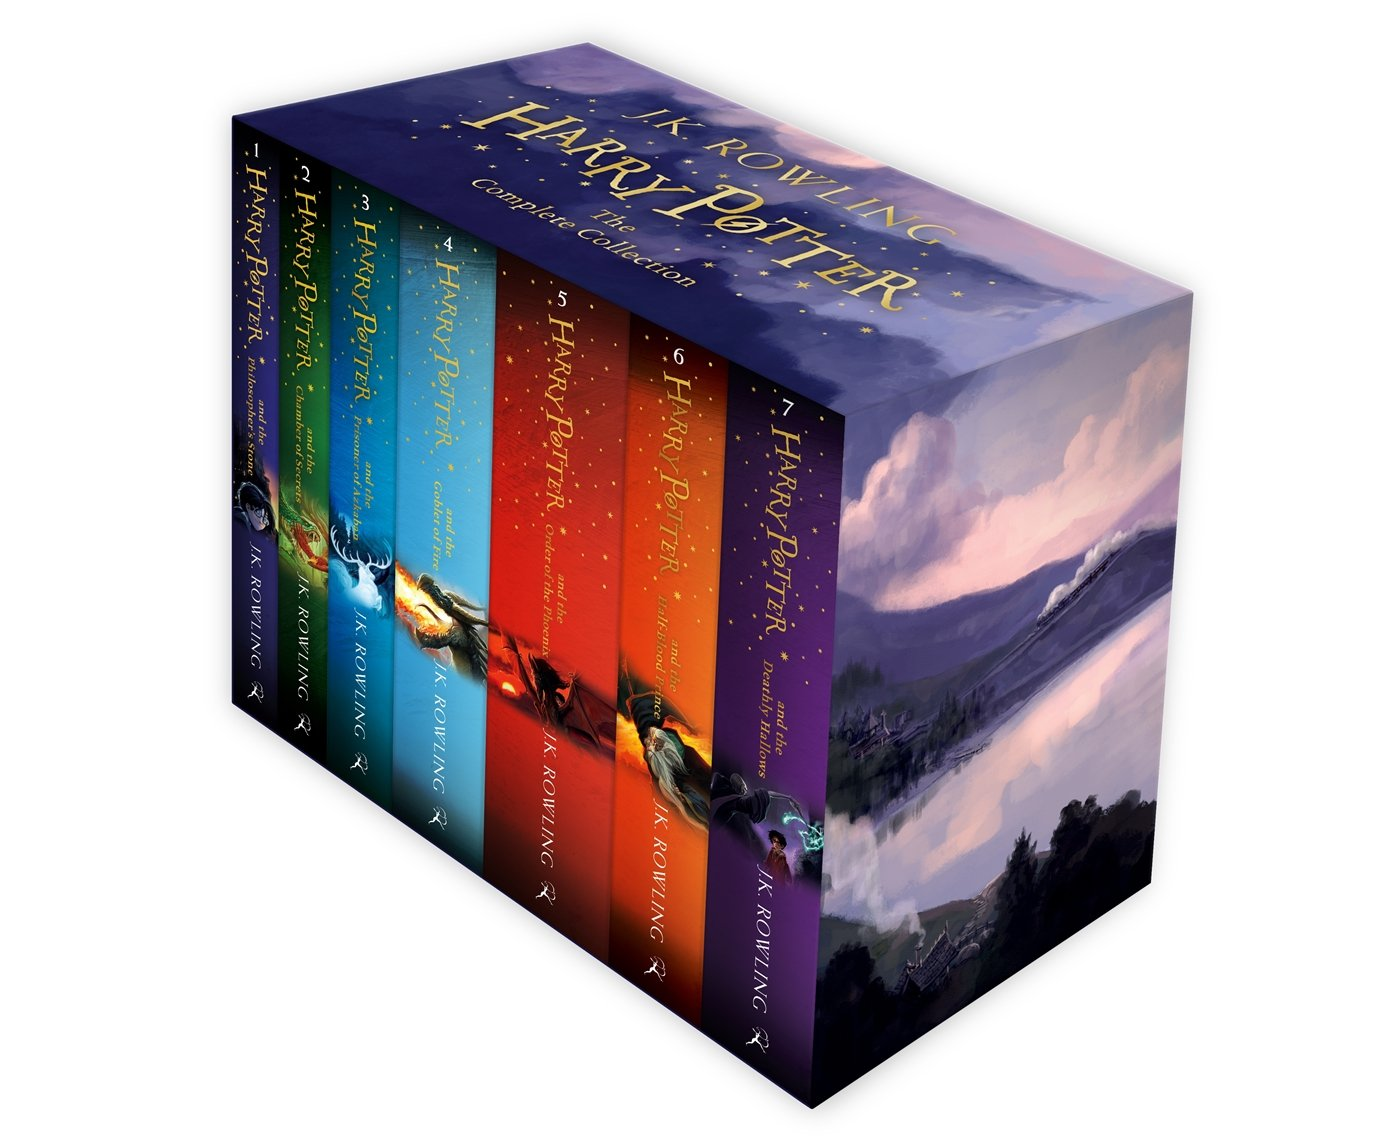 71rOzy4cyAL - Pack Harry Potter - The Complete Collection